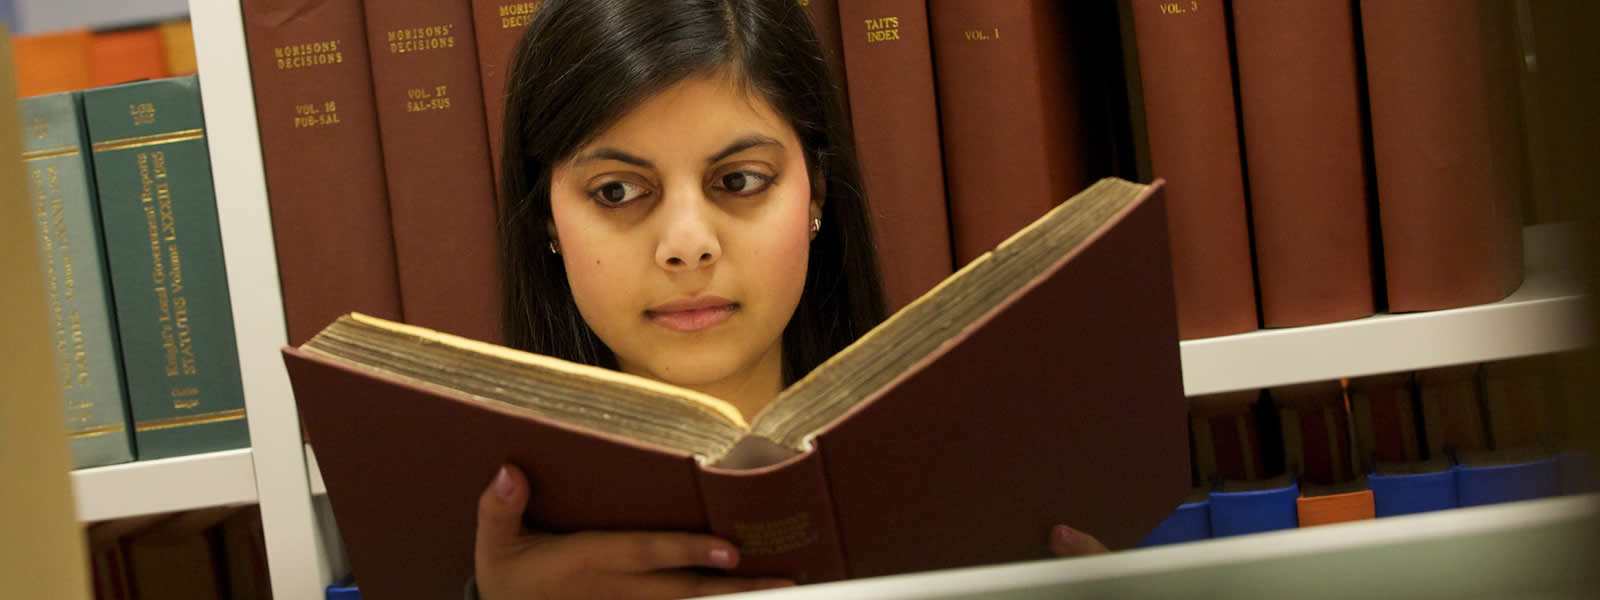 What subjects are needed at A level to go on to study Law at university?